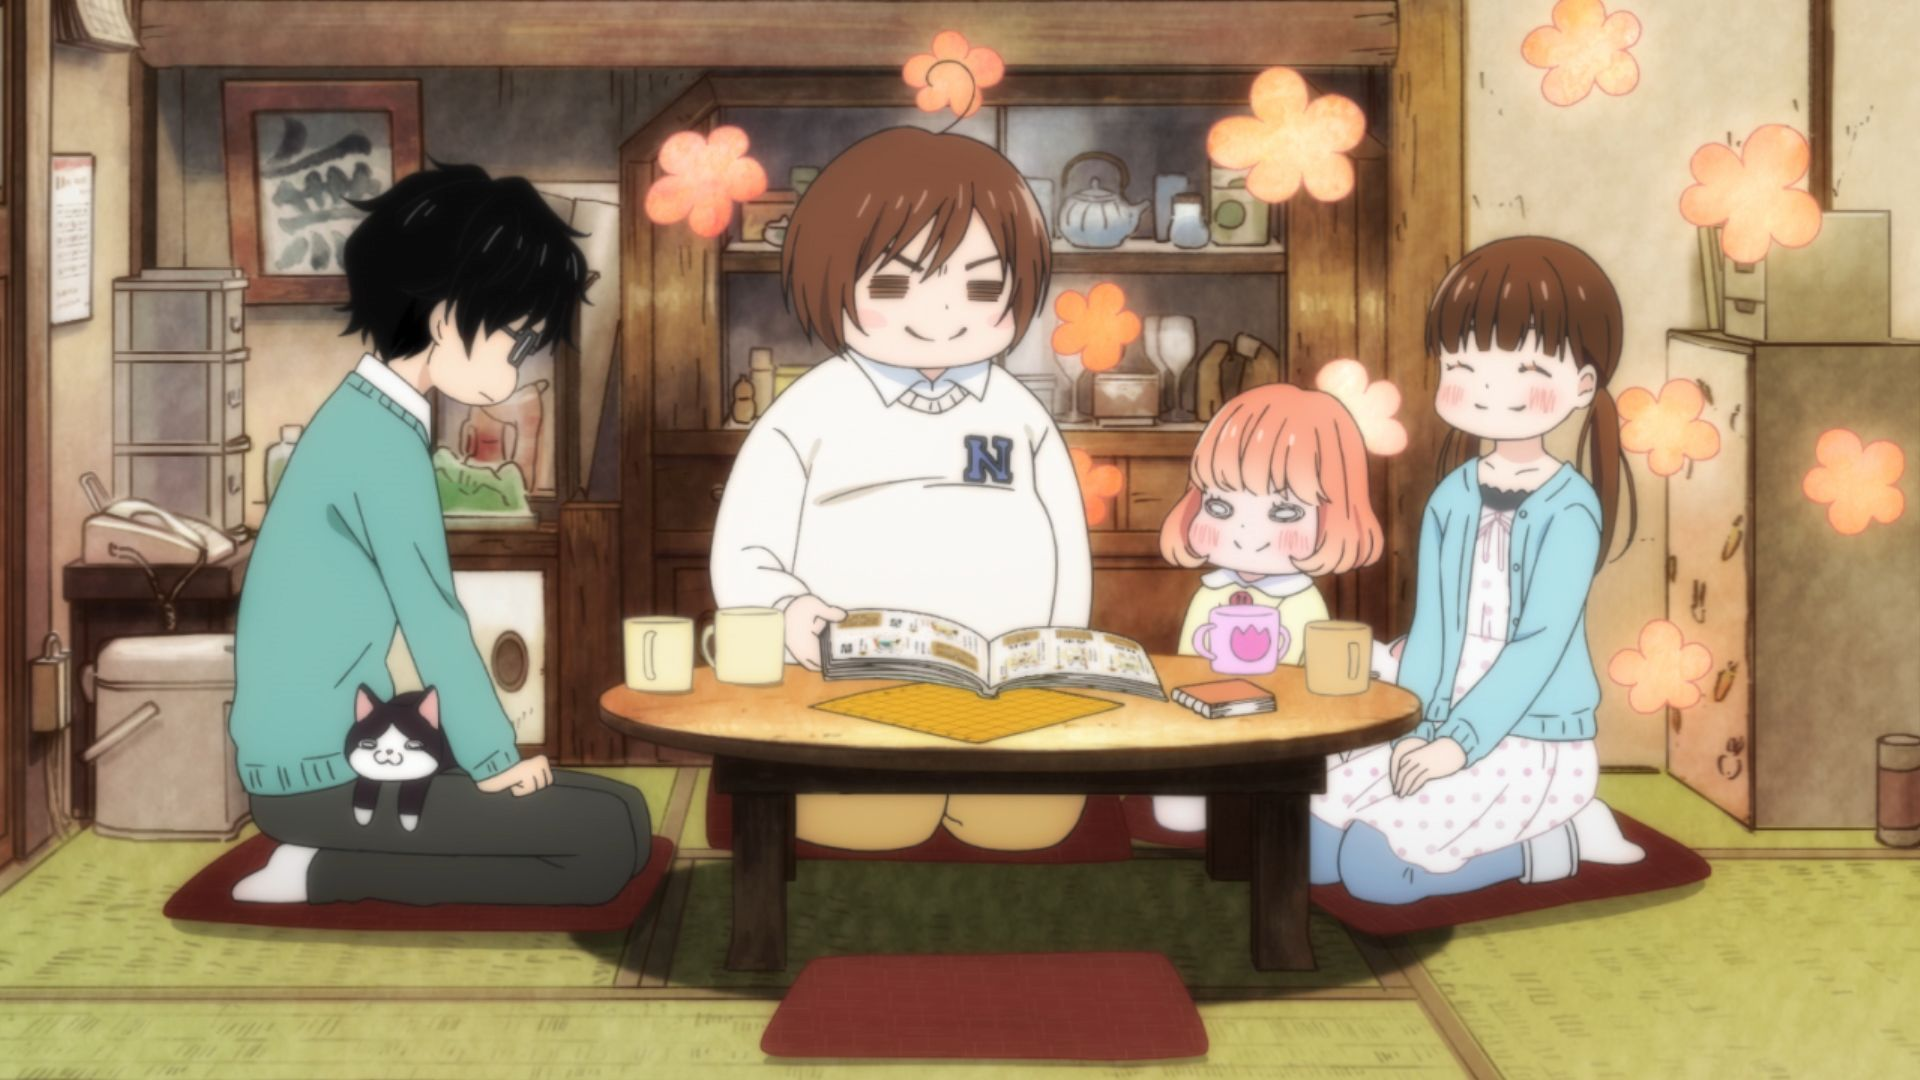 3 Gatsu No Lion Season 3: Canceled Or Renewed? All The Latest Details